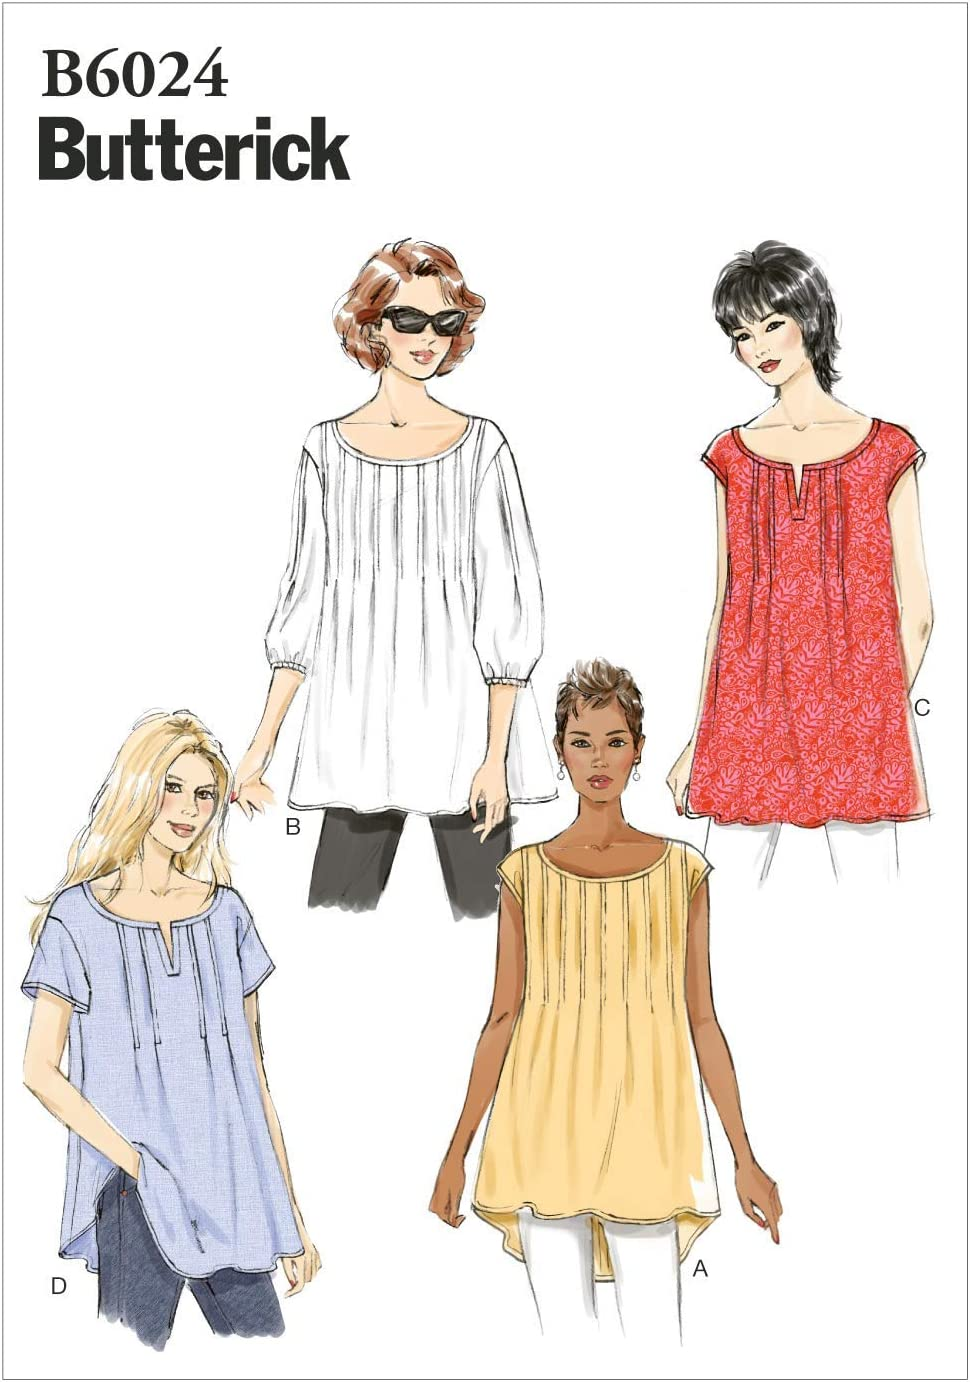 BUTTERICK PATTERNS B6024ZZ0 Misses' Top Max 89% OFF Over item handling Template Sewing Size ZZ